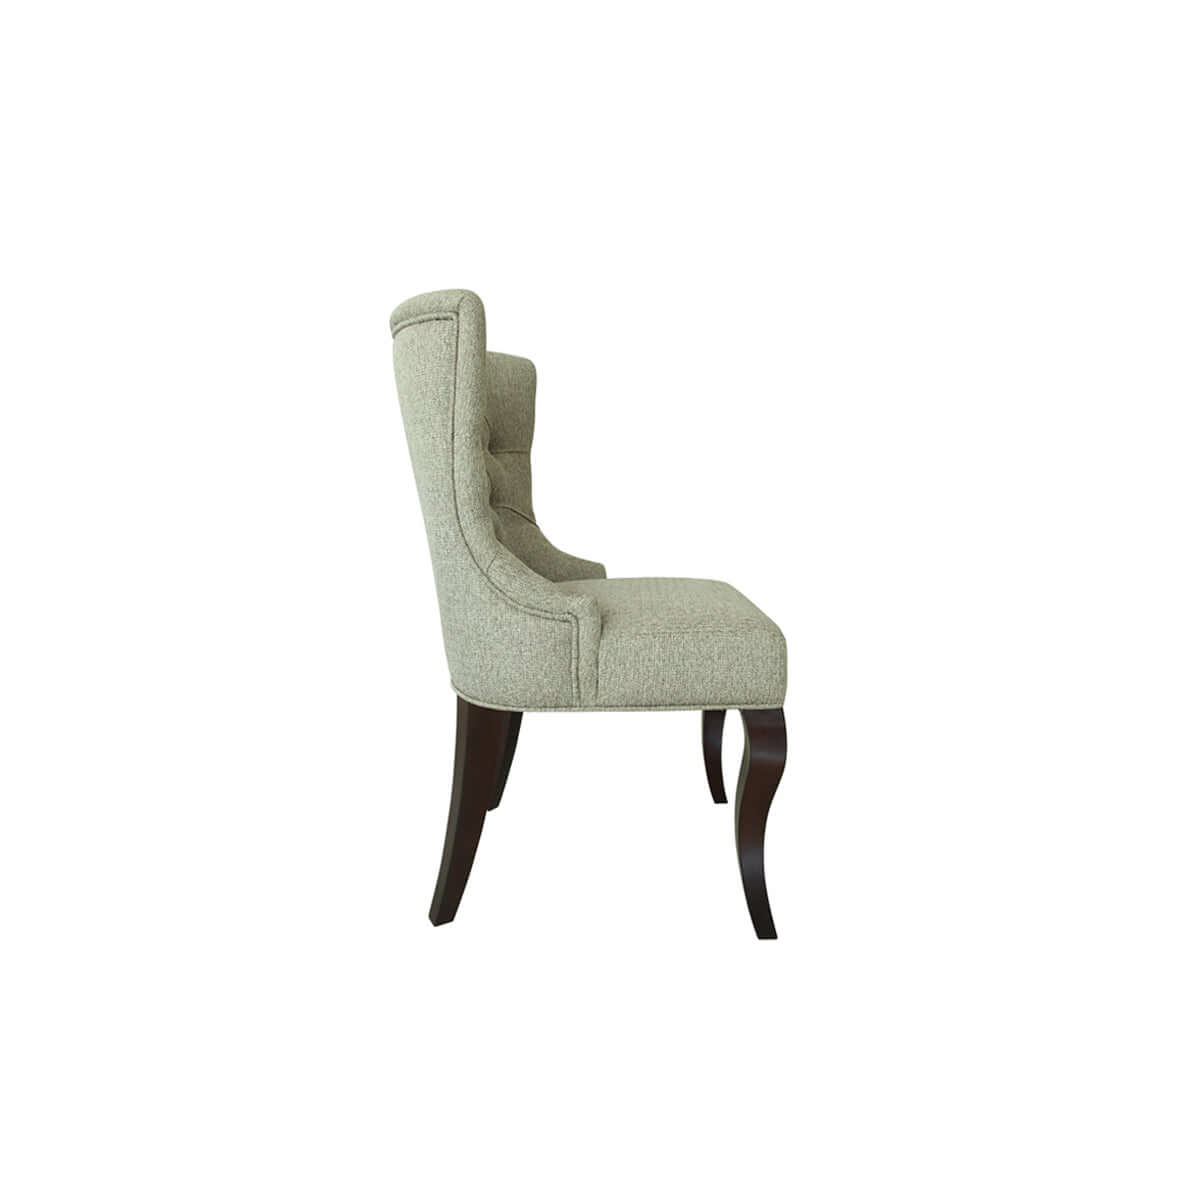 wingback dining chair with glossy curved legs, side view, made in Indonesia